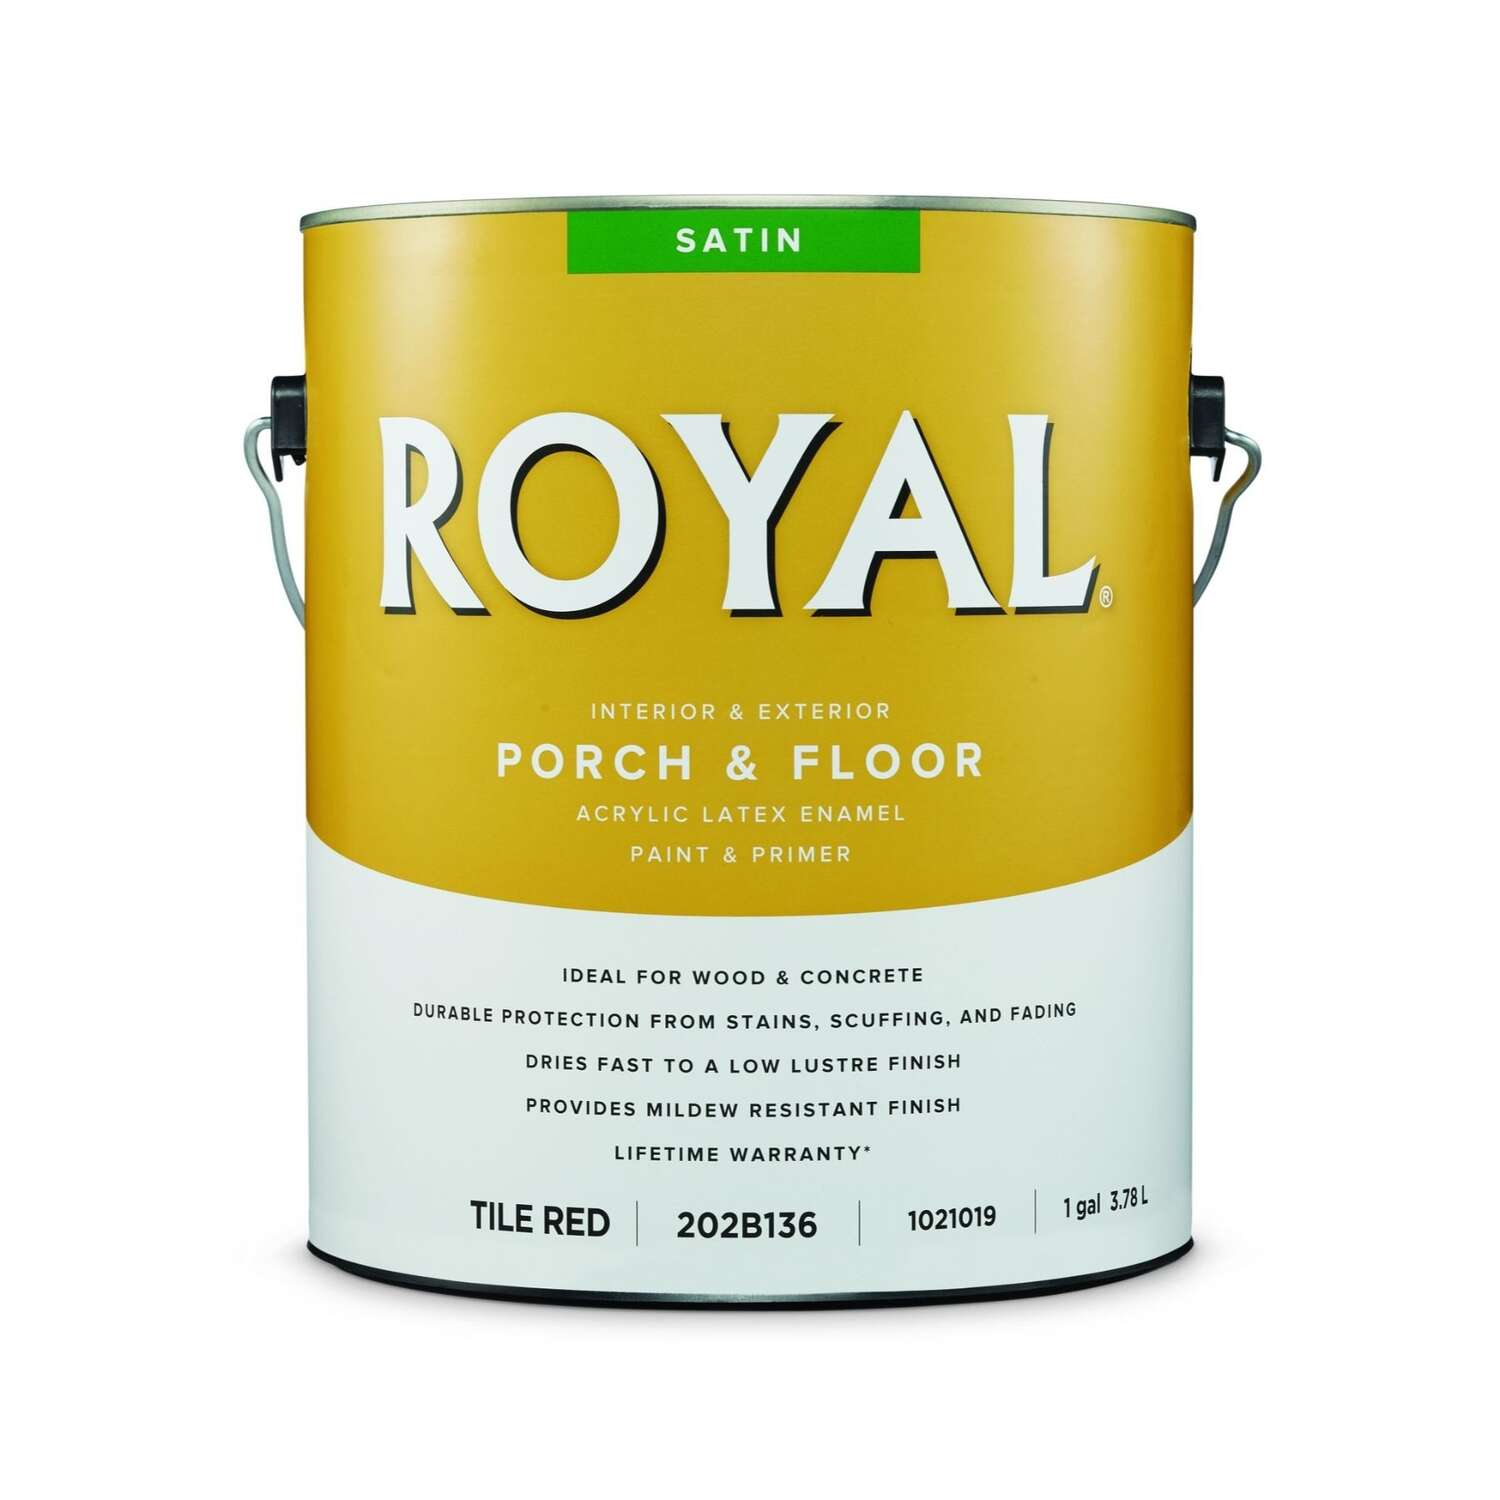 Royal  Satin  Tile Red  Porch & Floor Paint  1 gal.